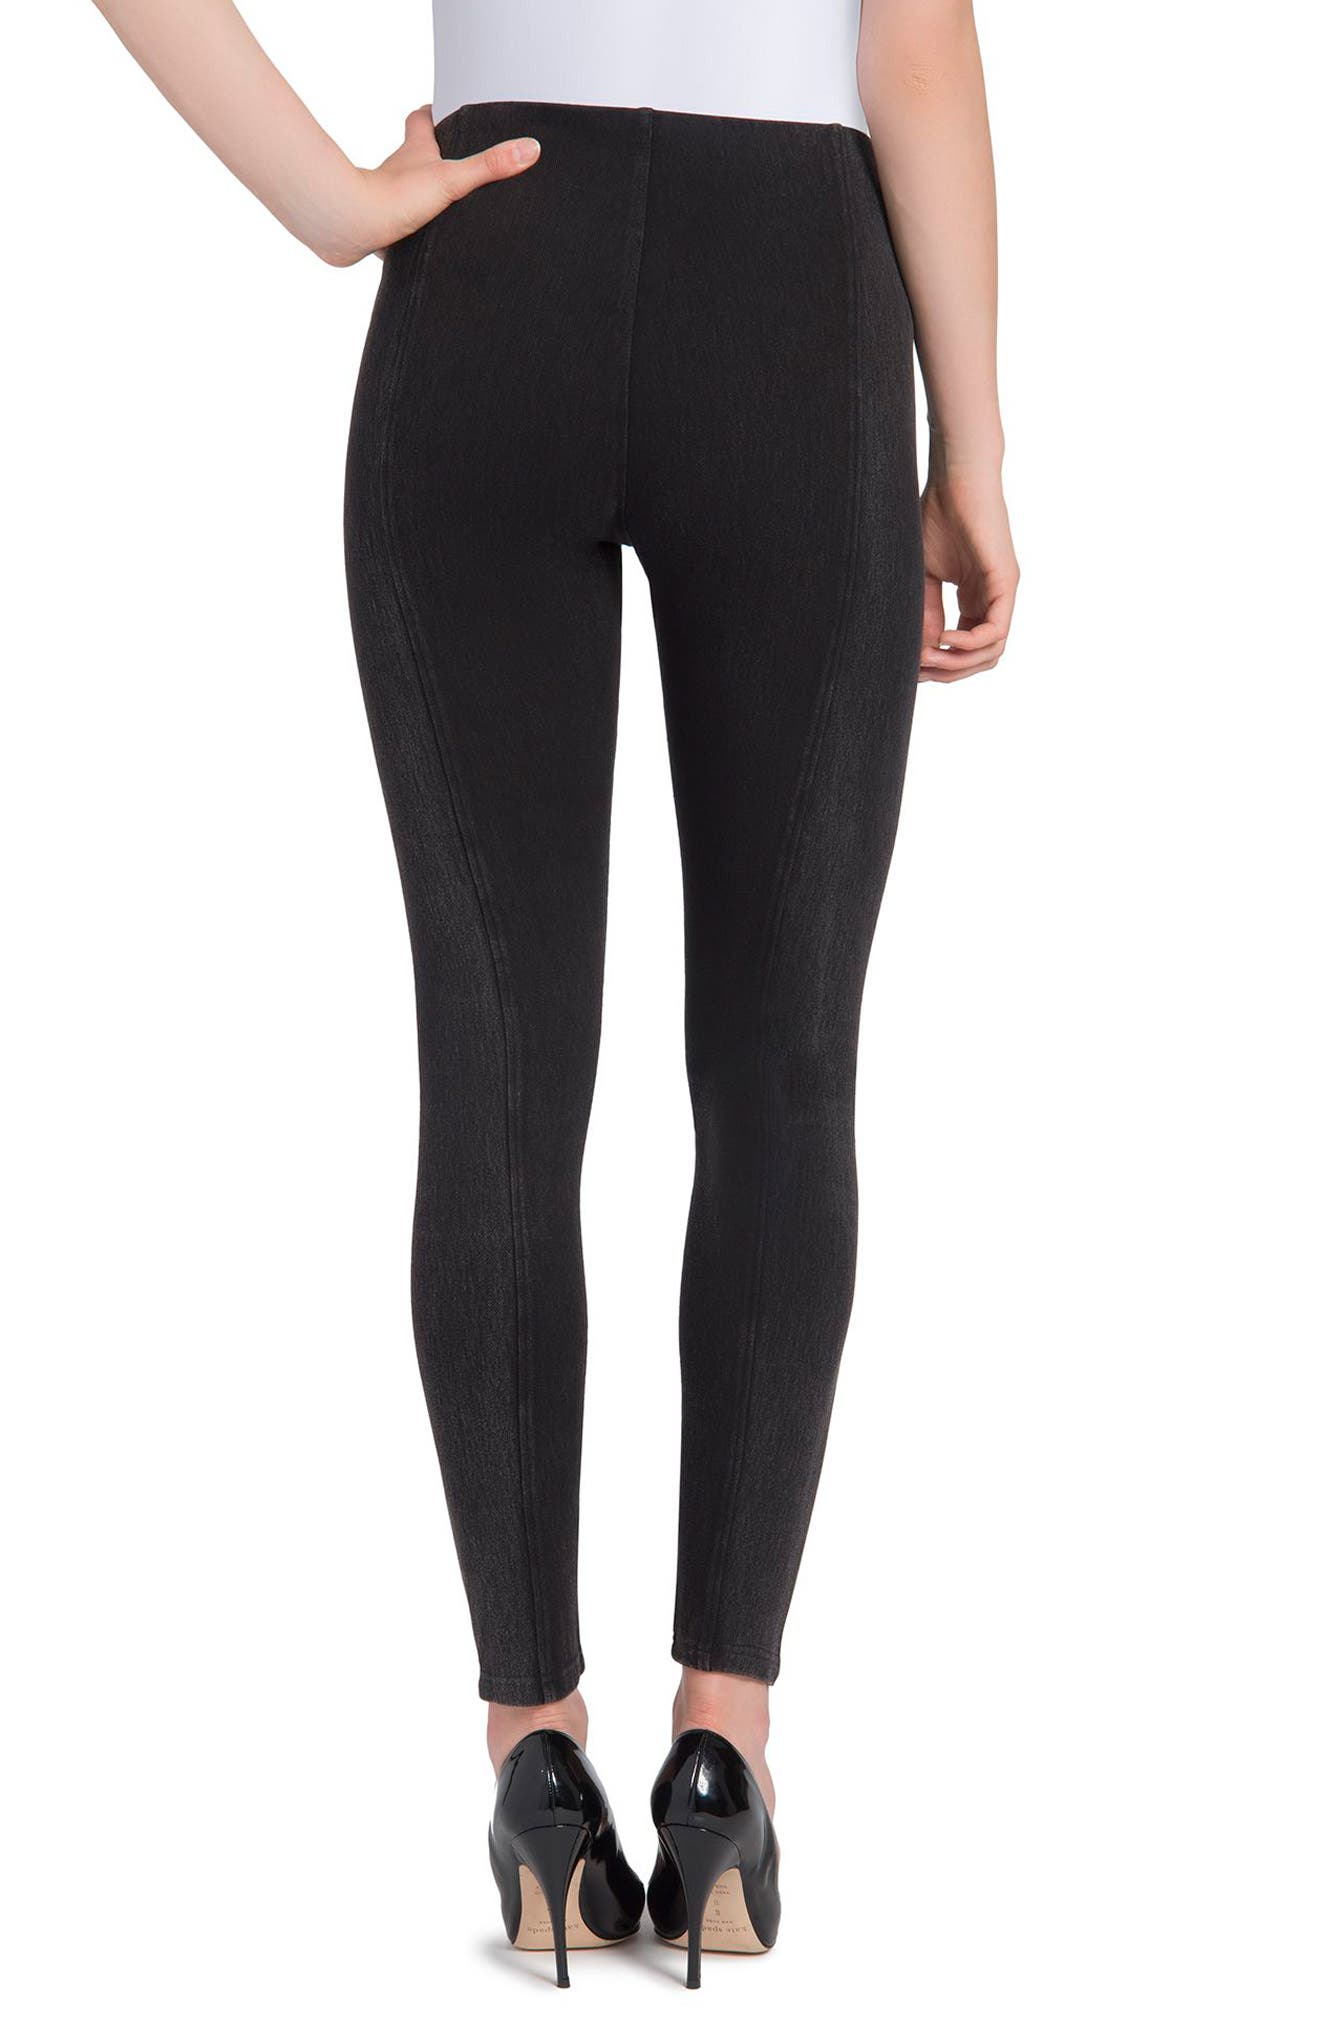 Marley Denim Leggings,                             Alternate thumbnail 3, color,